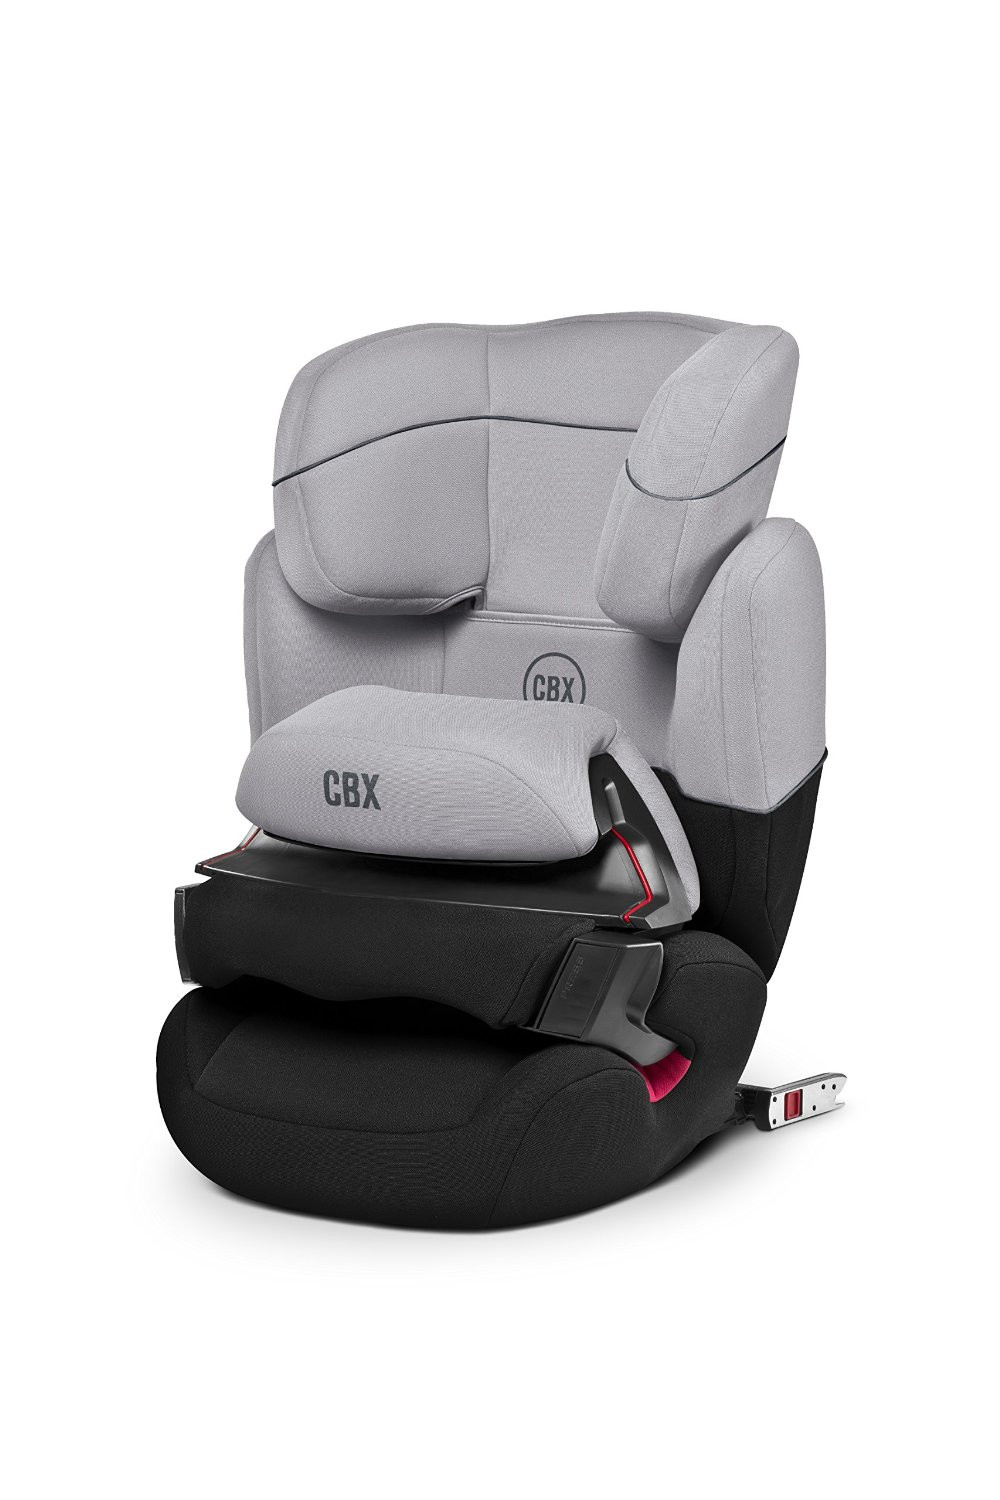 silla de coche aura fix cbx grupo 1 2 3 cybex opiniones. Black Bedroom Furniture Sets. Home Design Ideas